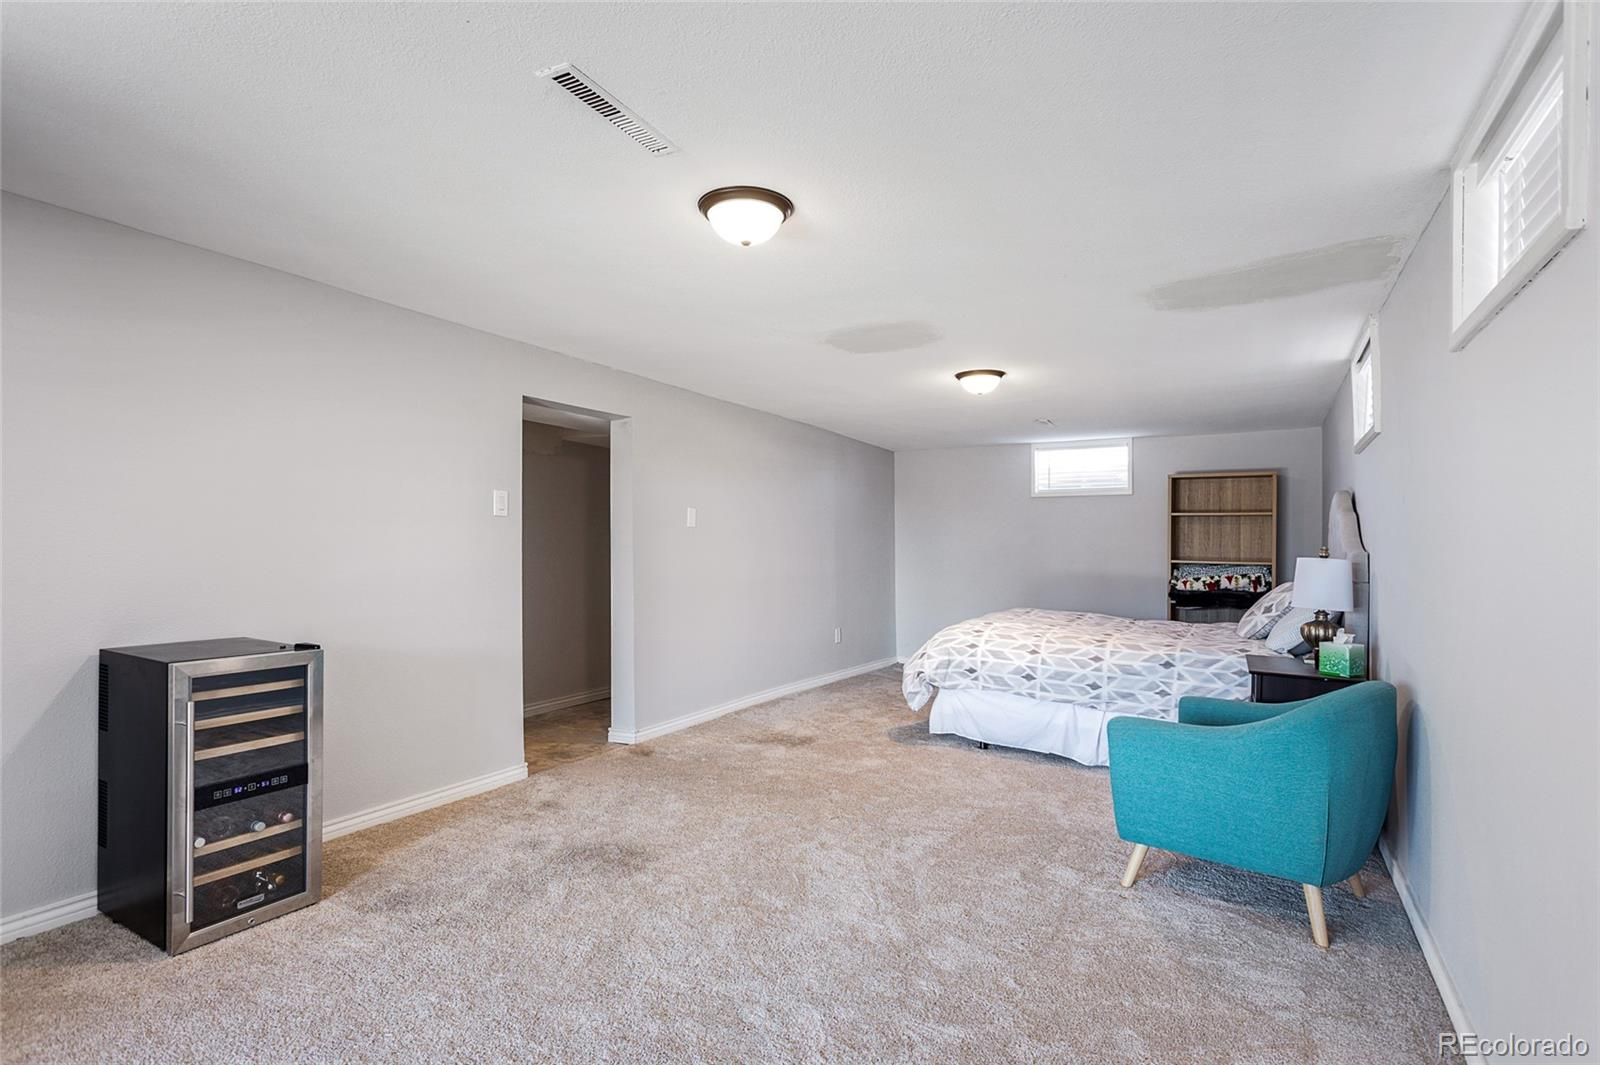 MLS# 4969690 - 19 - 9570 W 54th Place, Arvada, CO 80002